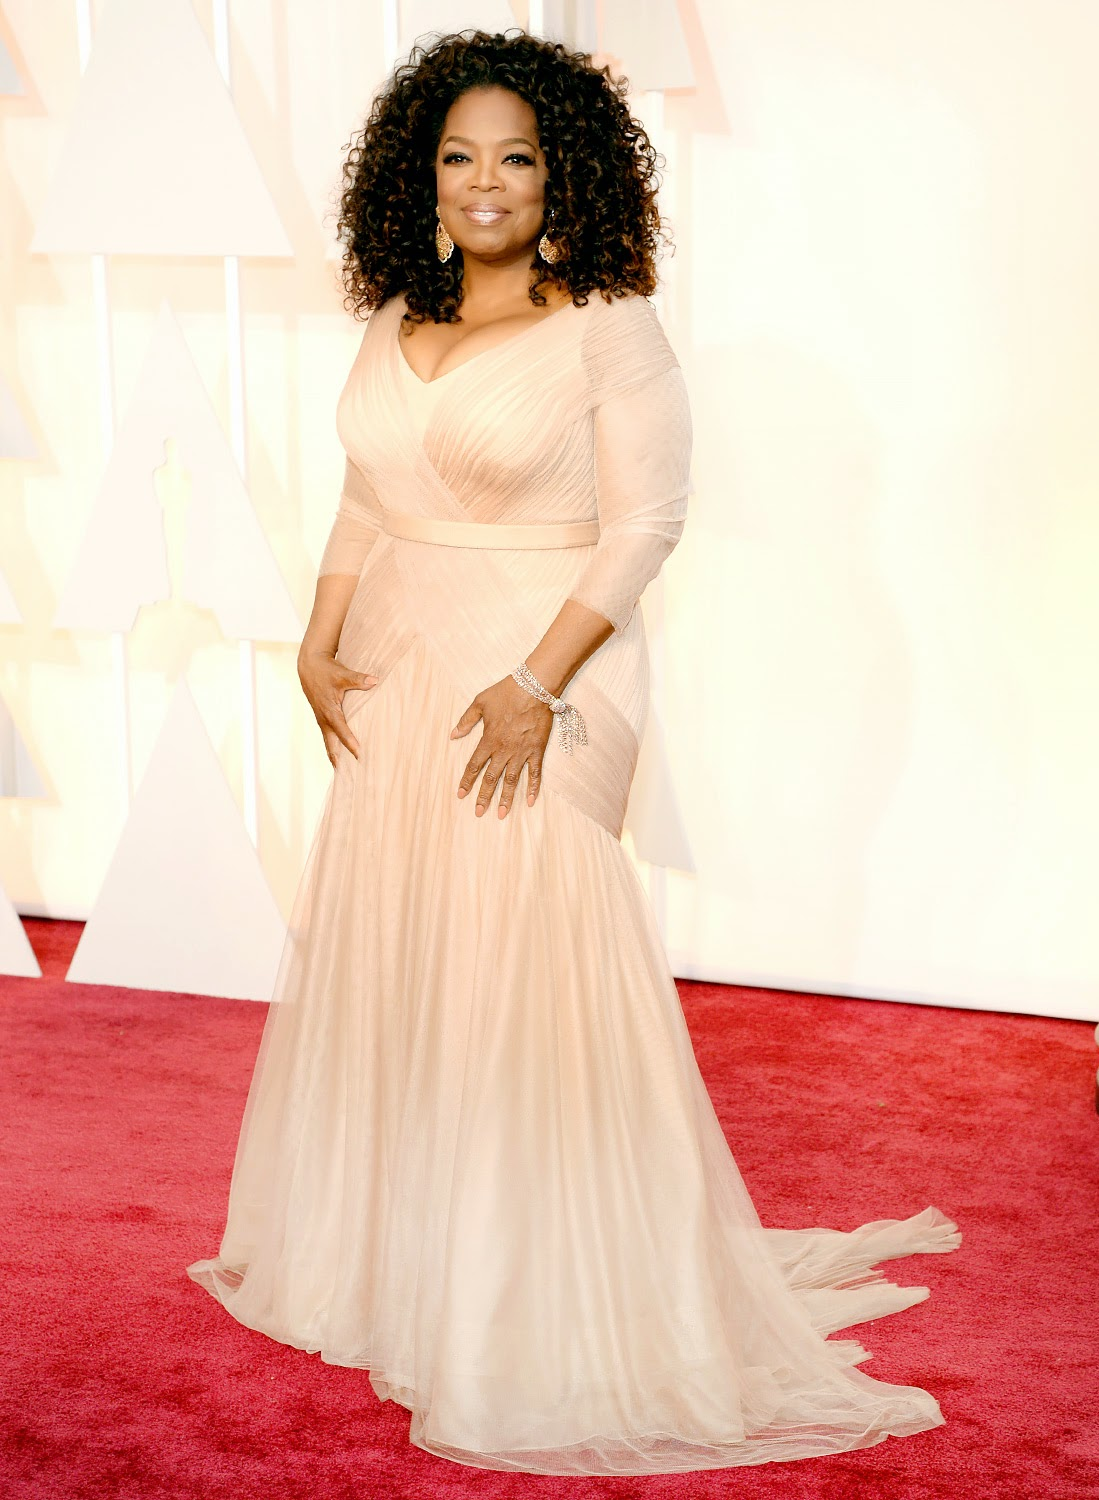 Oprah Winfrey flaunts curves in a Vera Wang gown at the 2015 Oscars in Hollywood